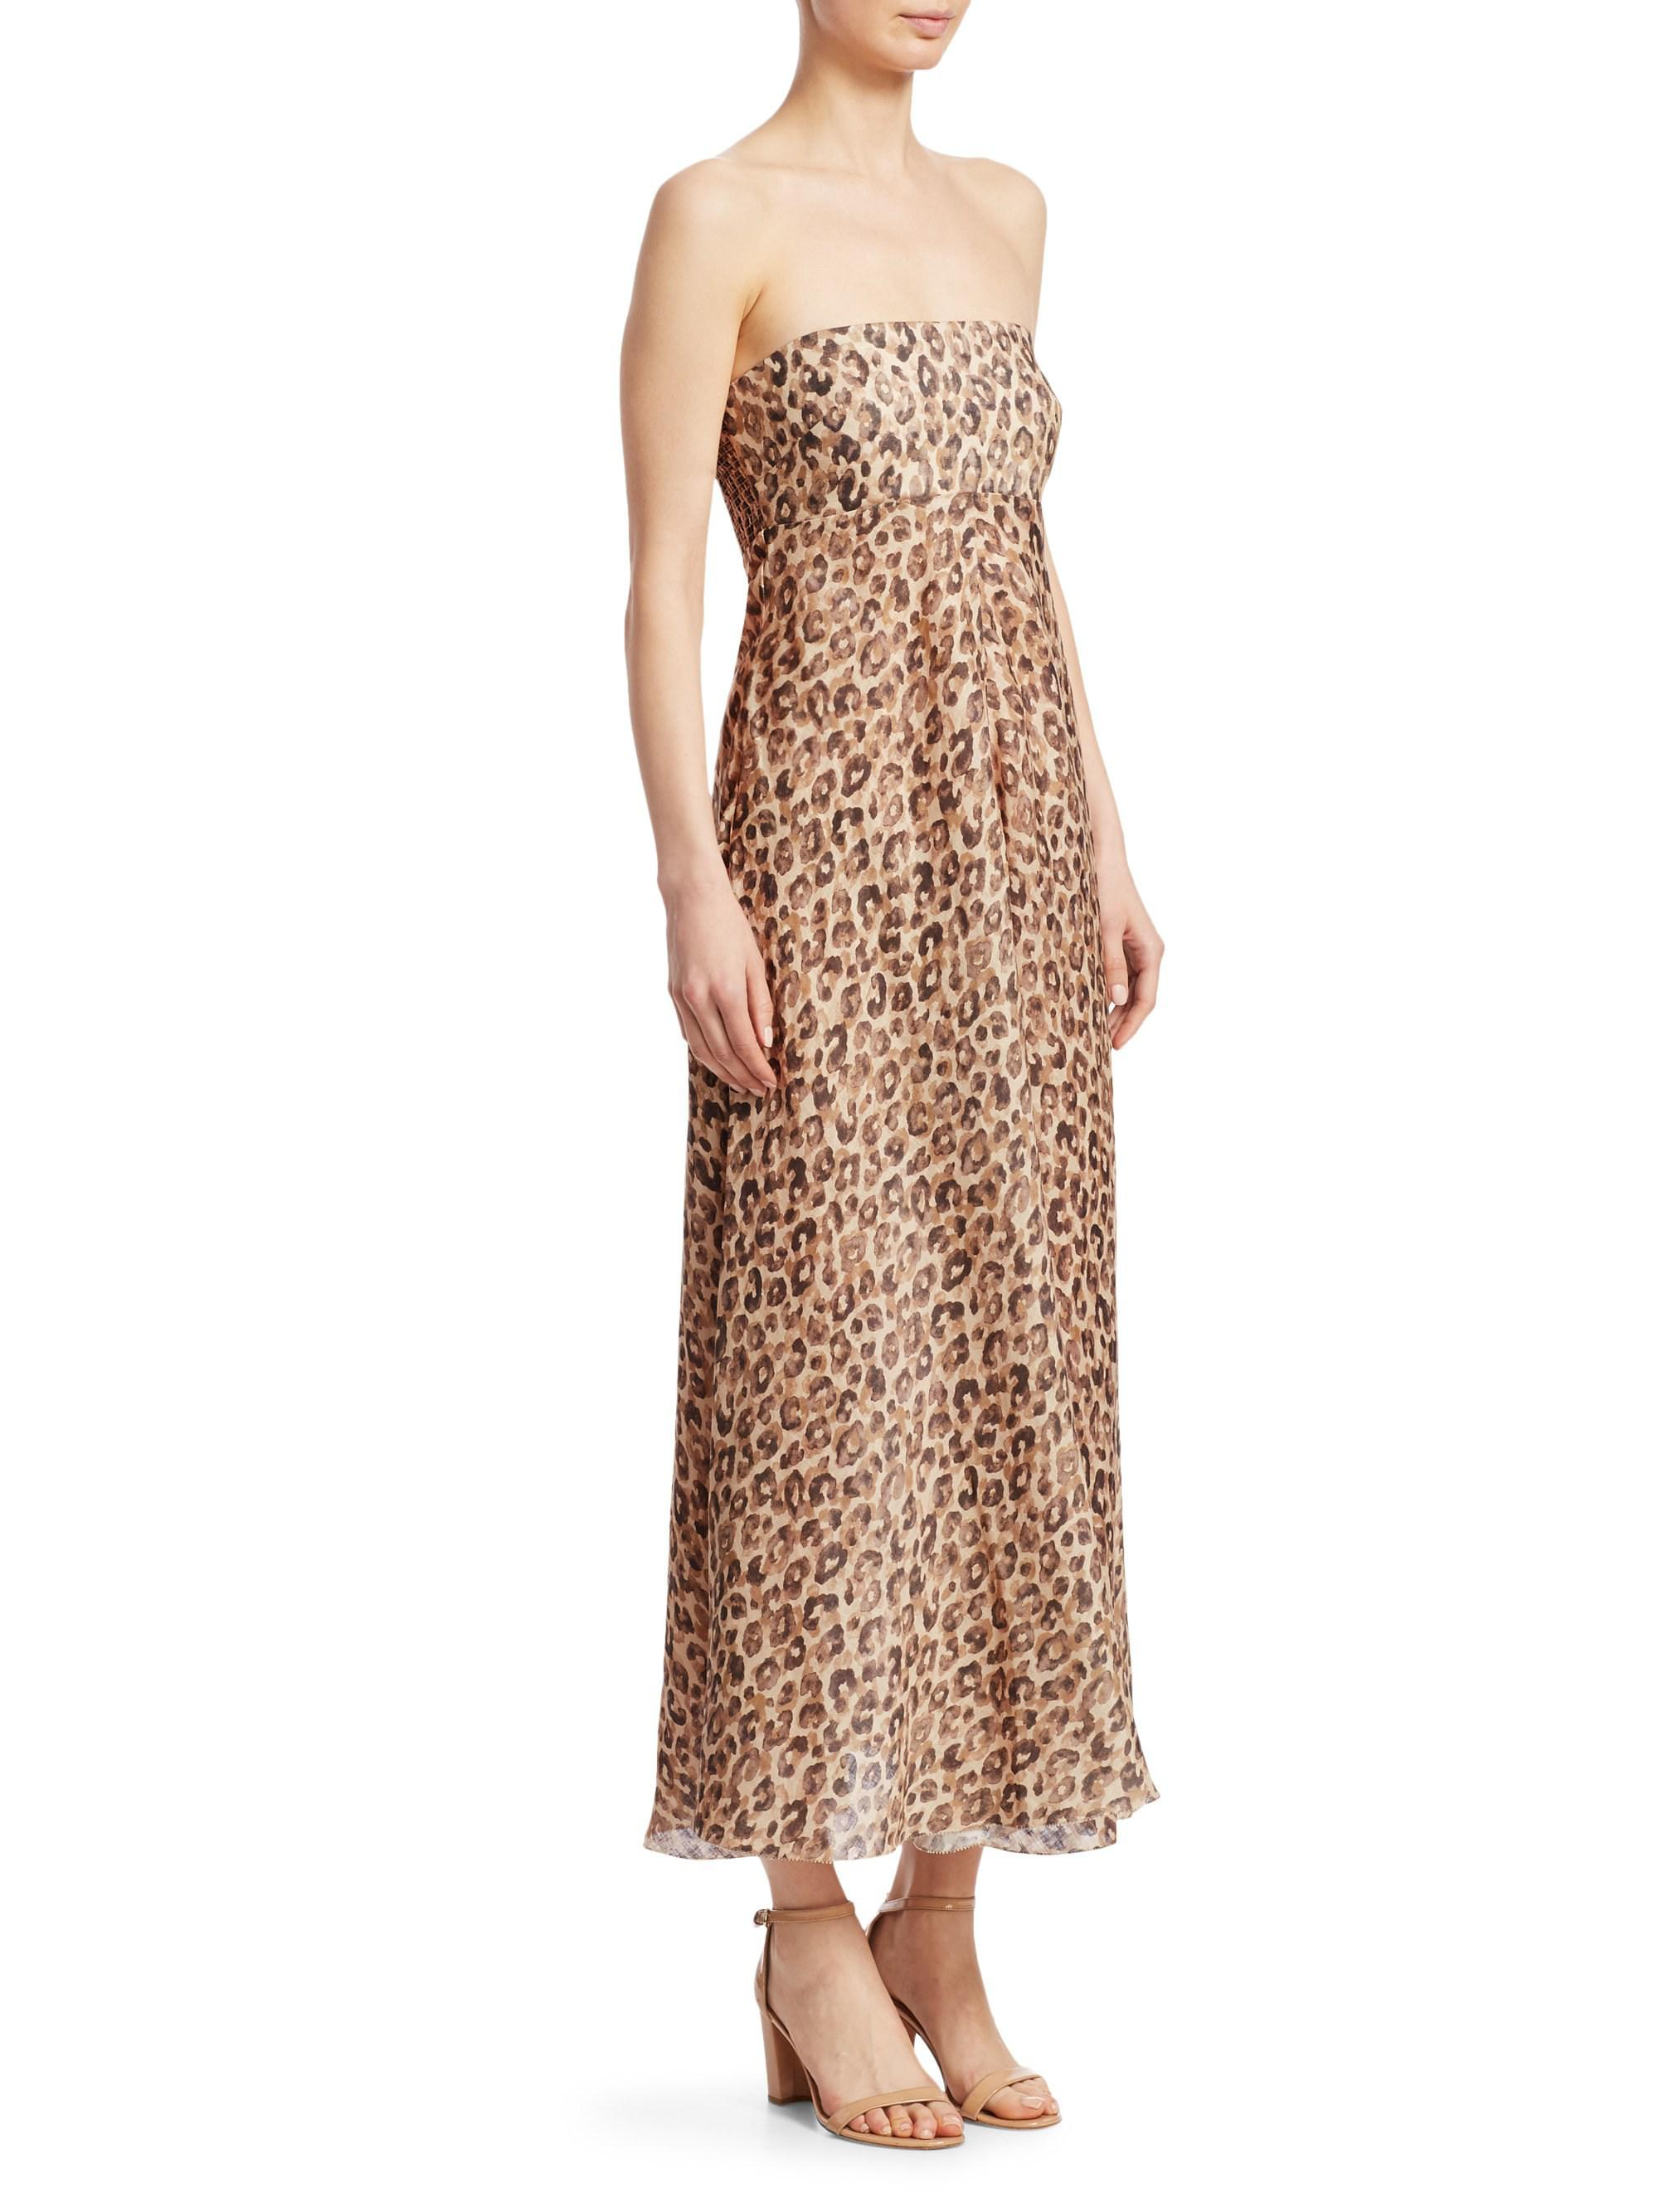 Melody Leopard Strapless Maxi Dress